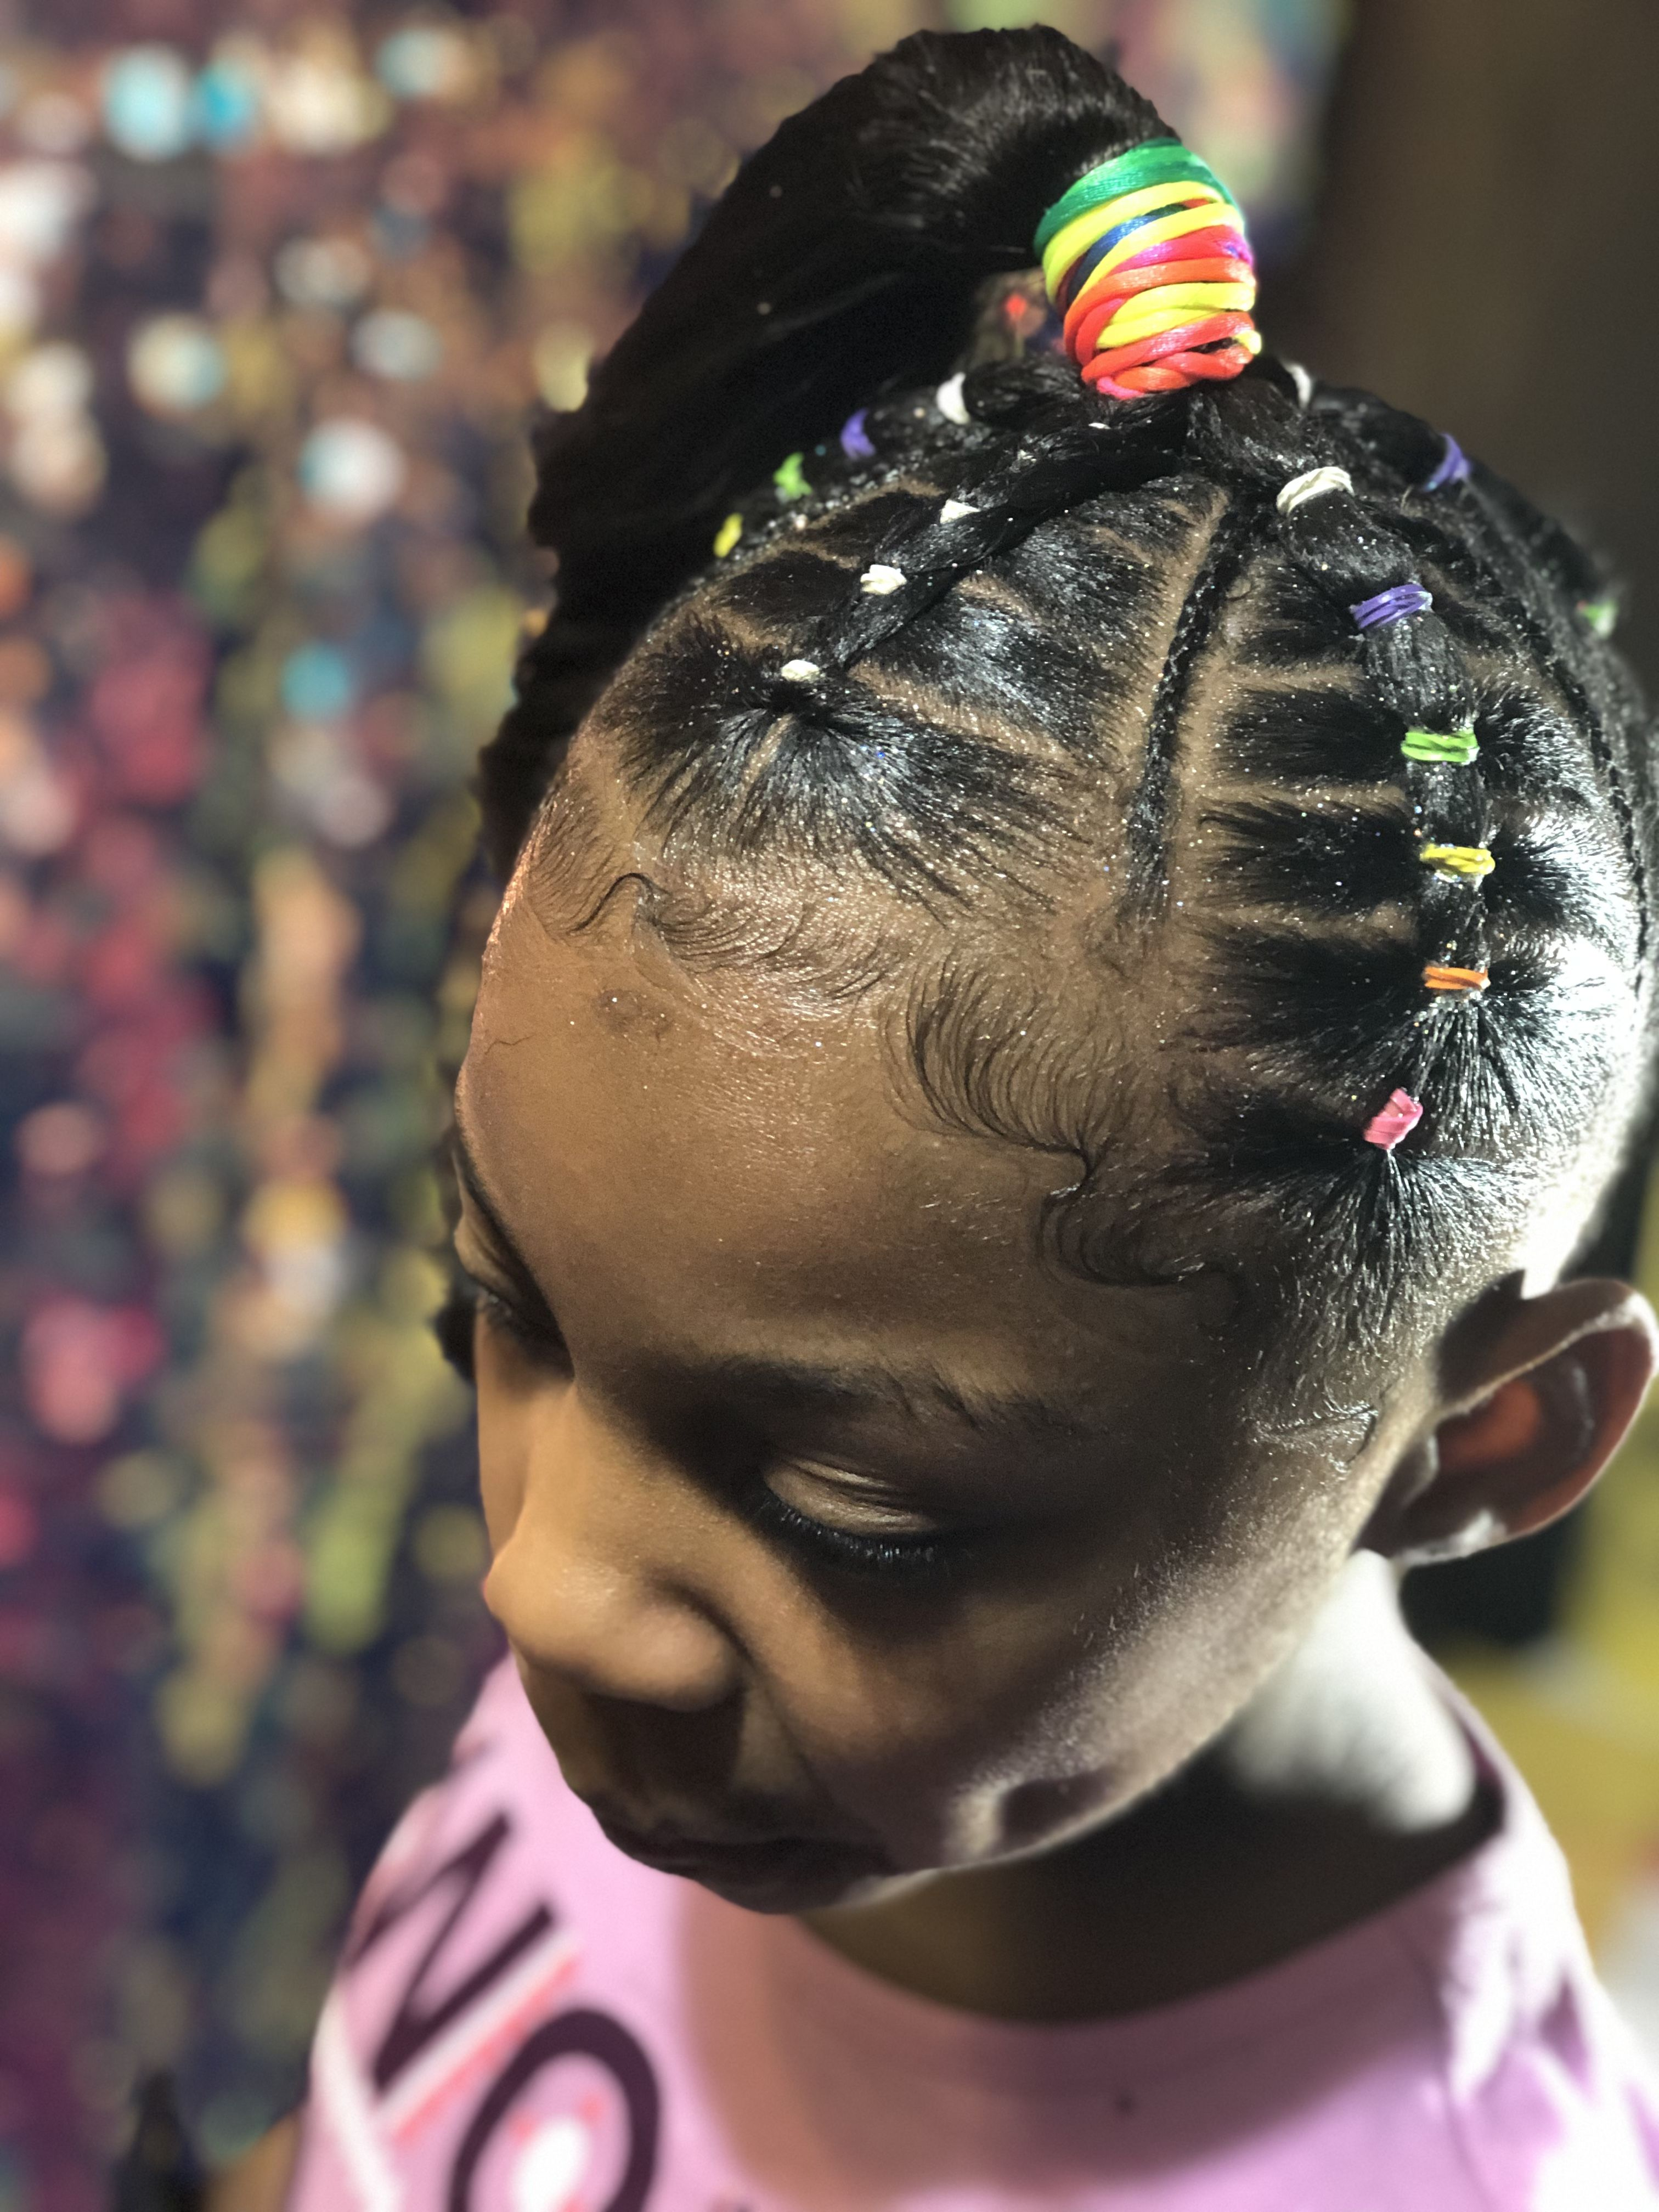 Beautiful Rubberband Hair Styles For Little Natural Hair Black African American Girls For Weddings Simpl Natural Hair Styles Kids Curly Hairstyles Hair Styles